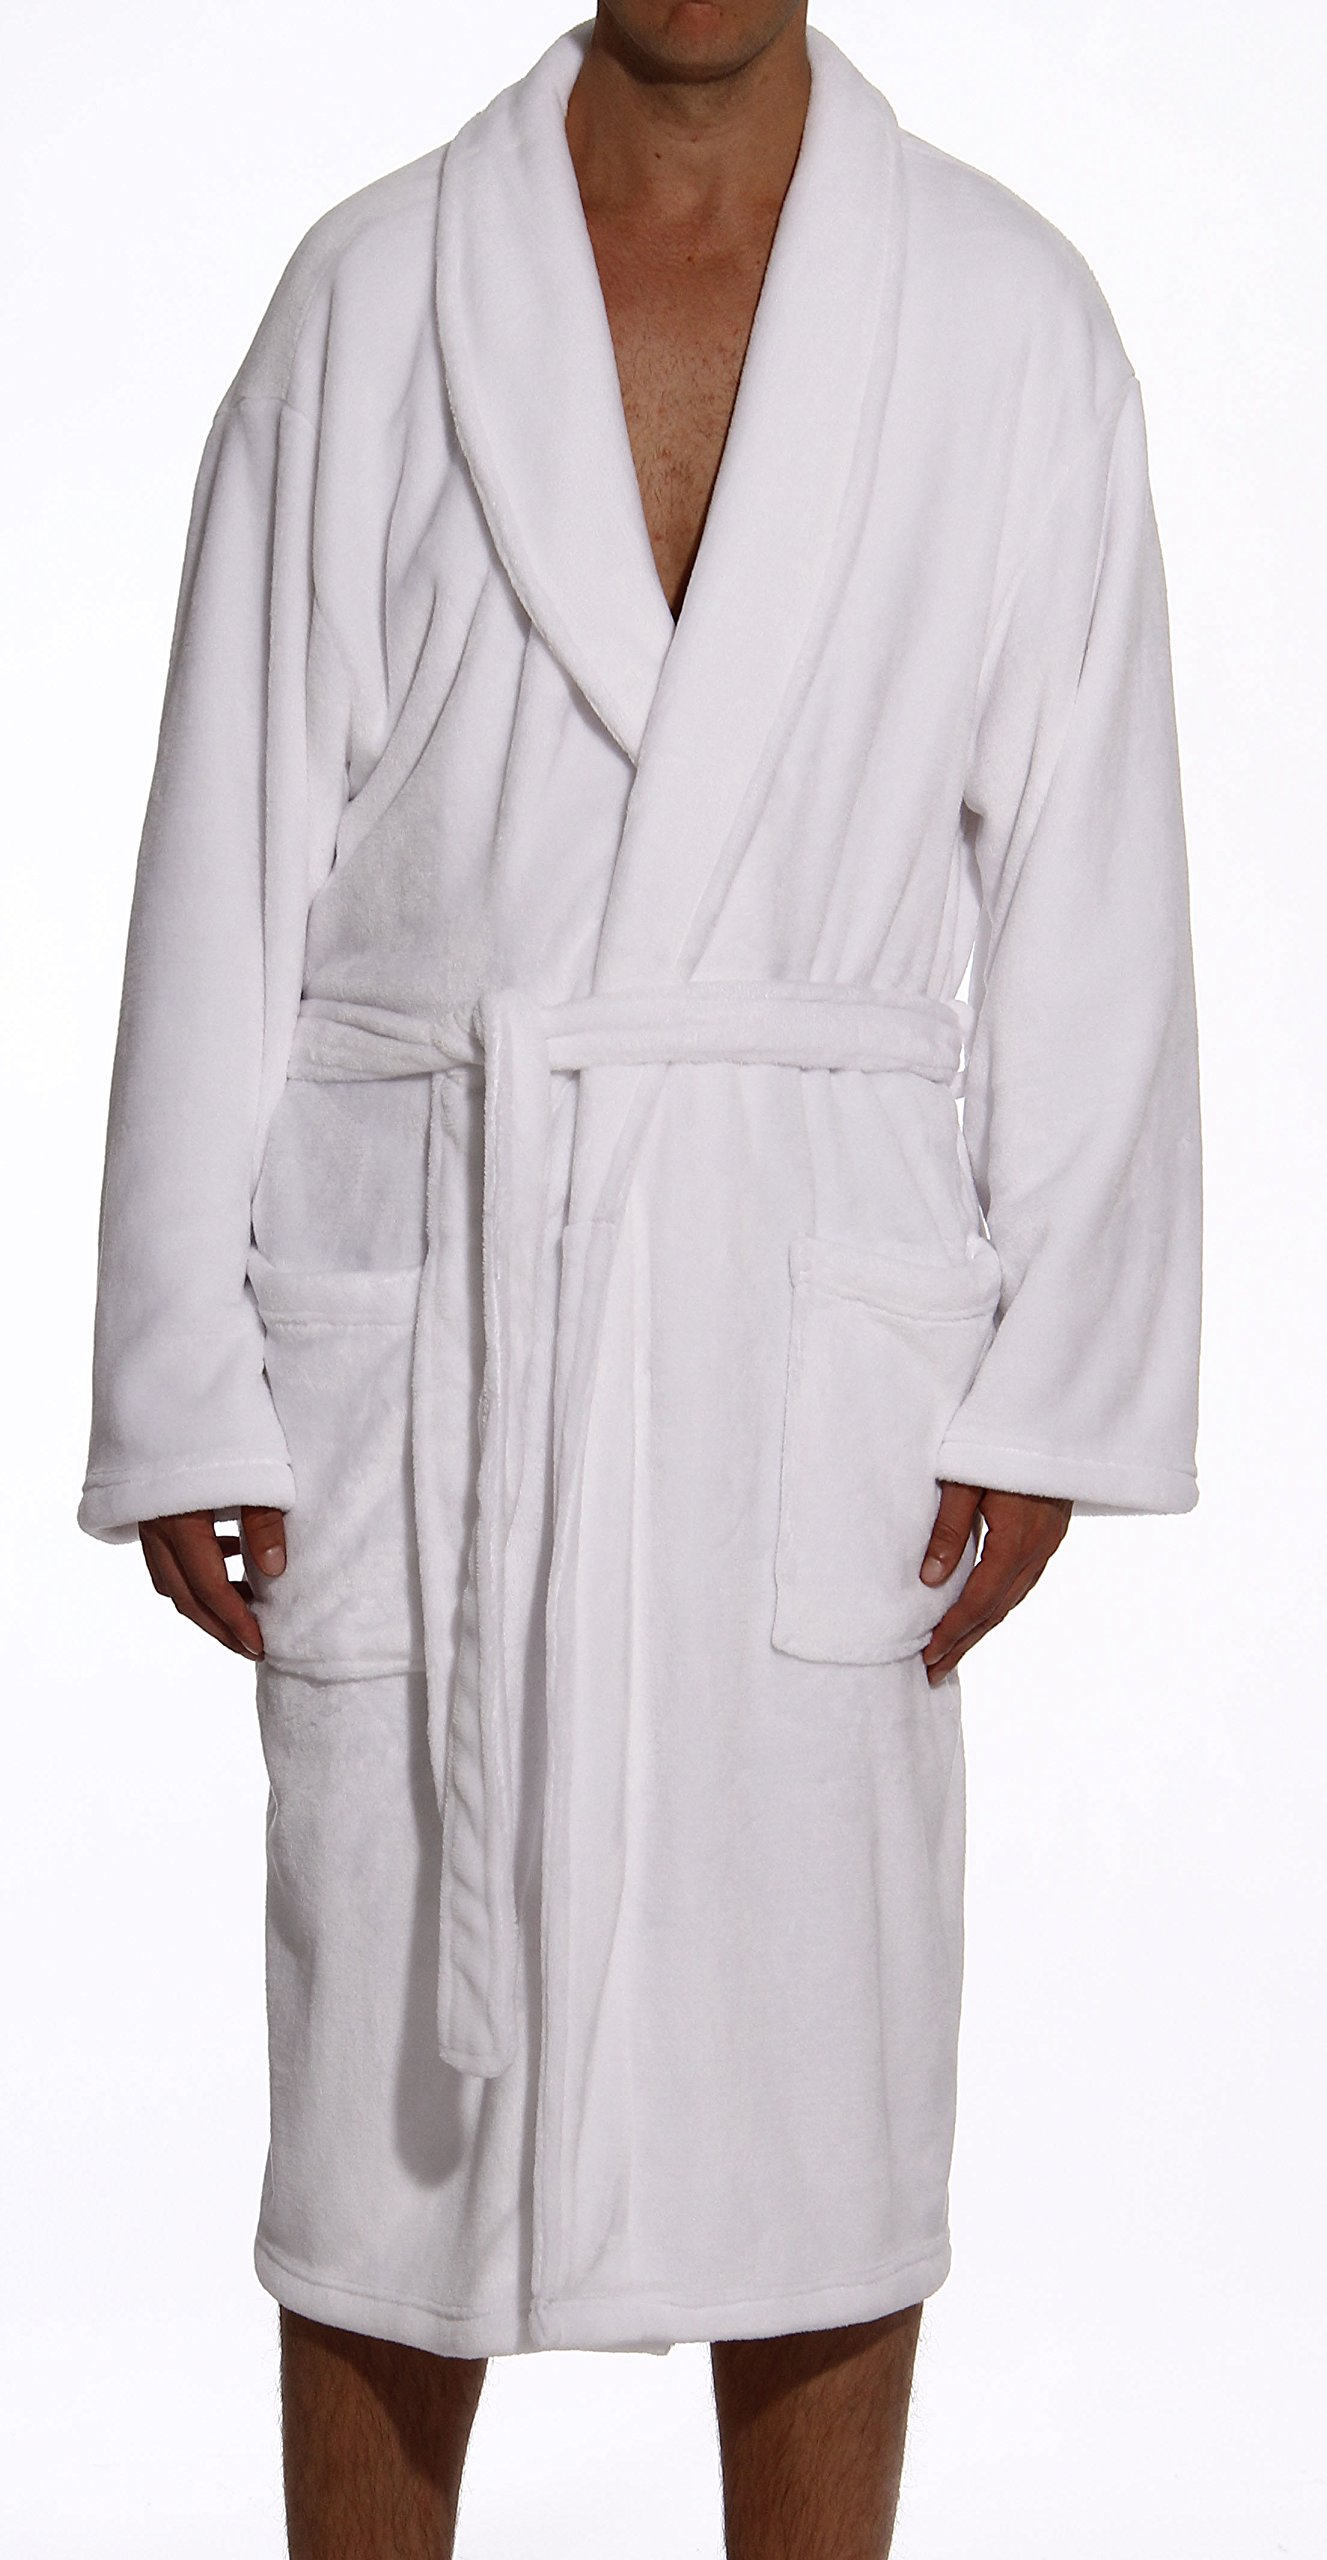 #followme 46901-WHT-XXL Velour Robe/Robes Men